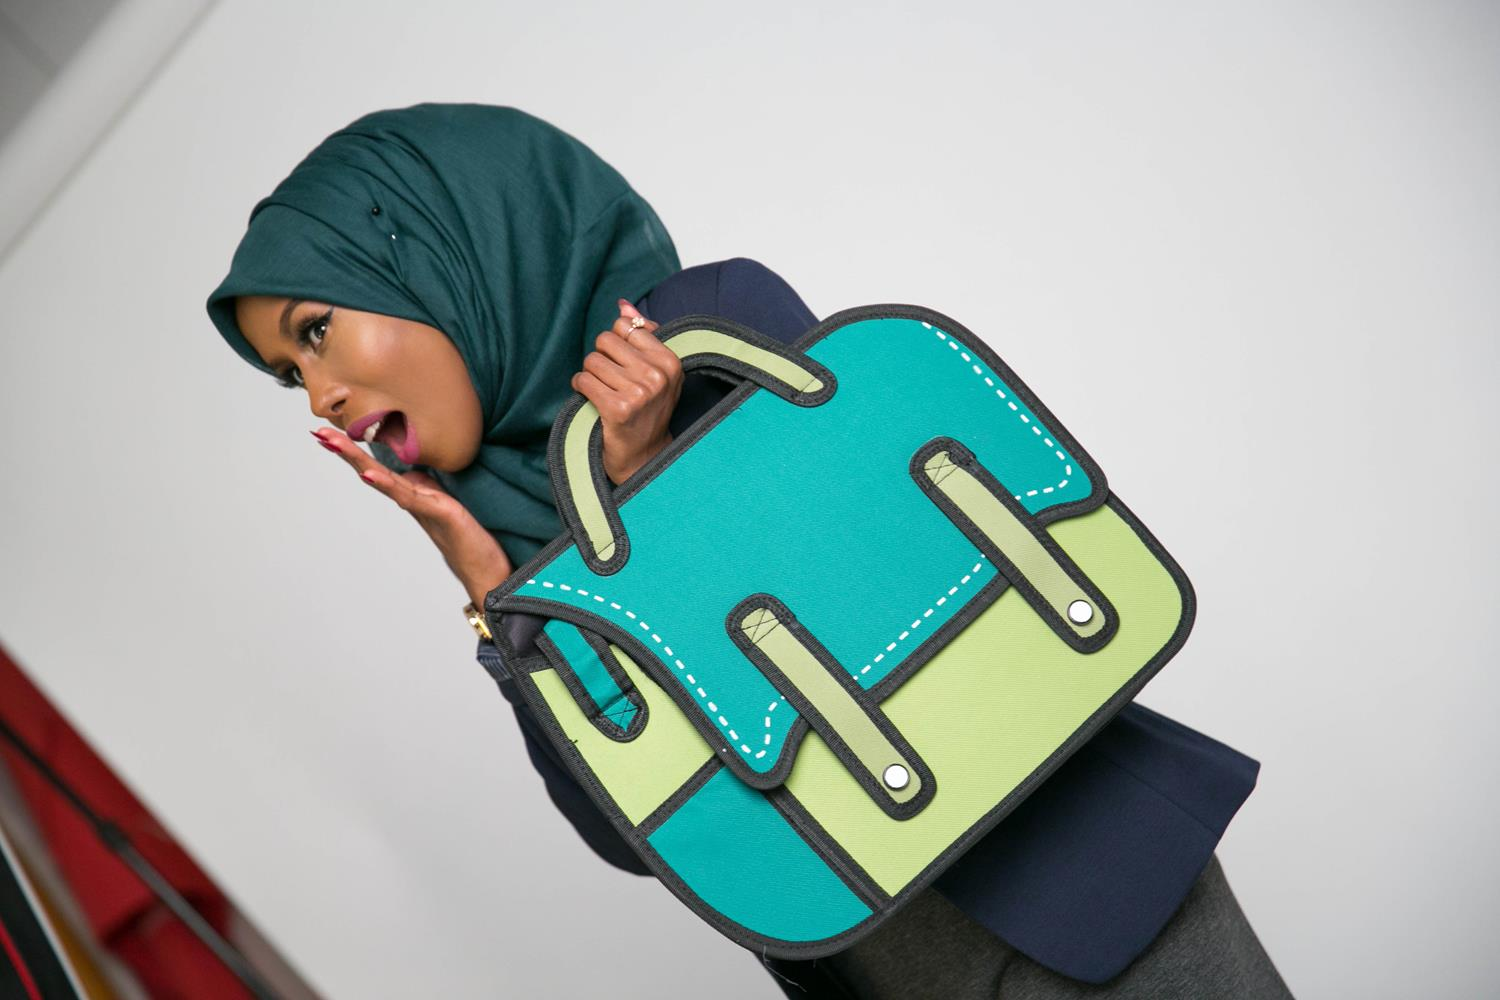 Product modelling by Basma K by MAKSAM London Photography